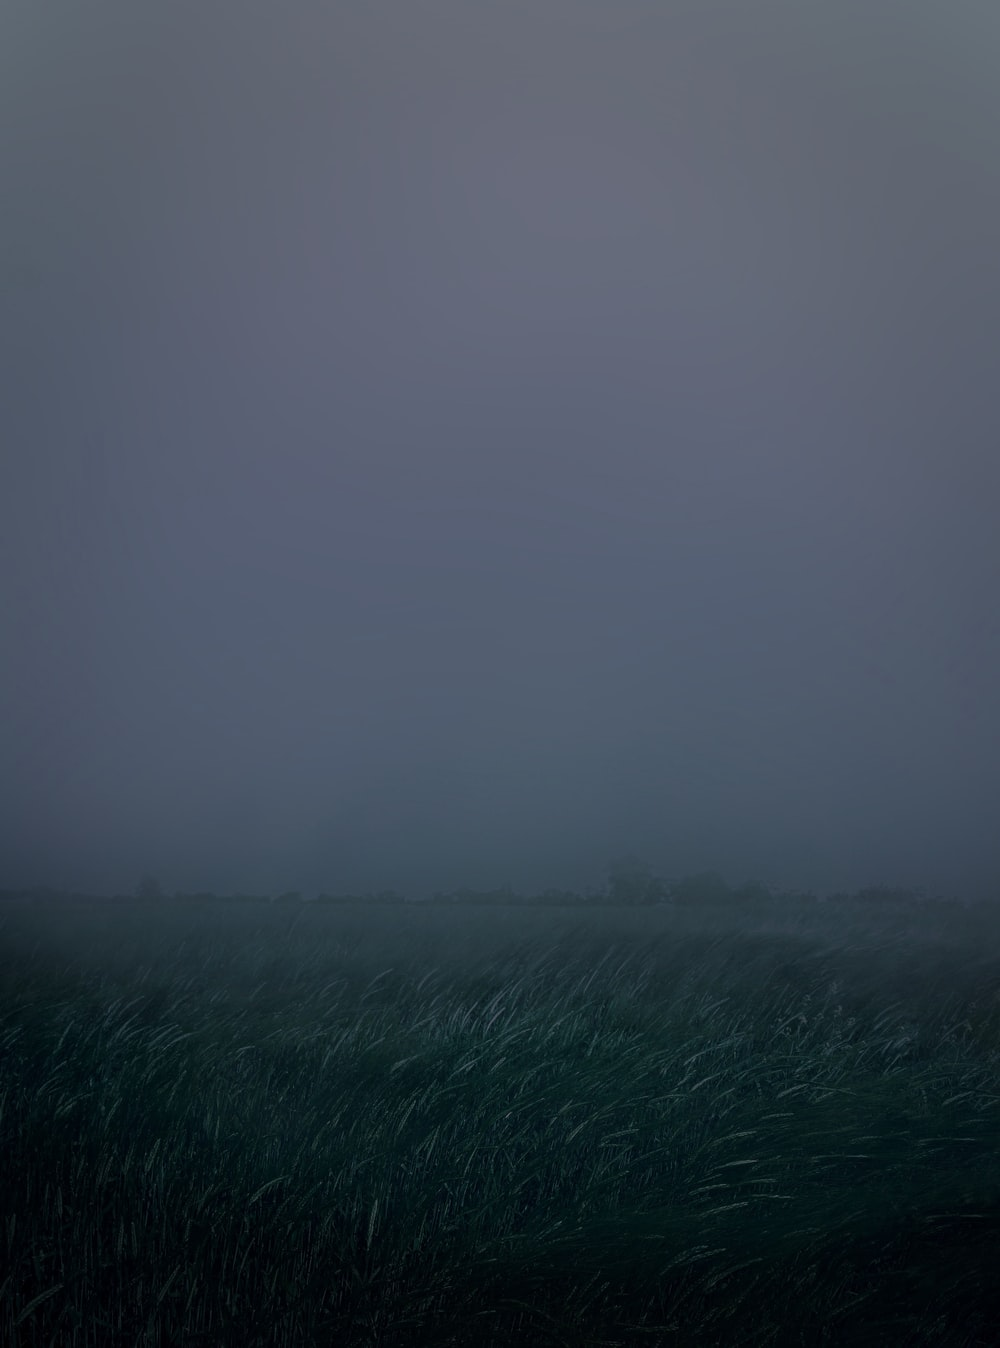 green grass field covered with fog